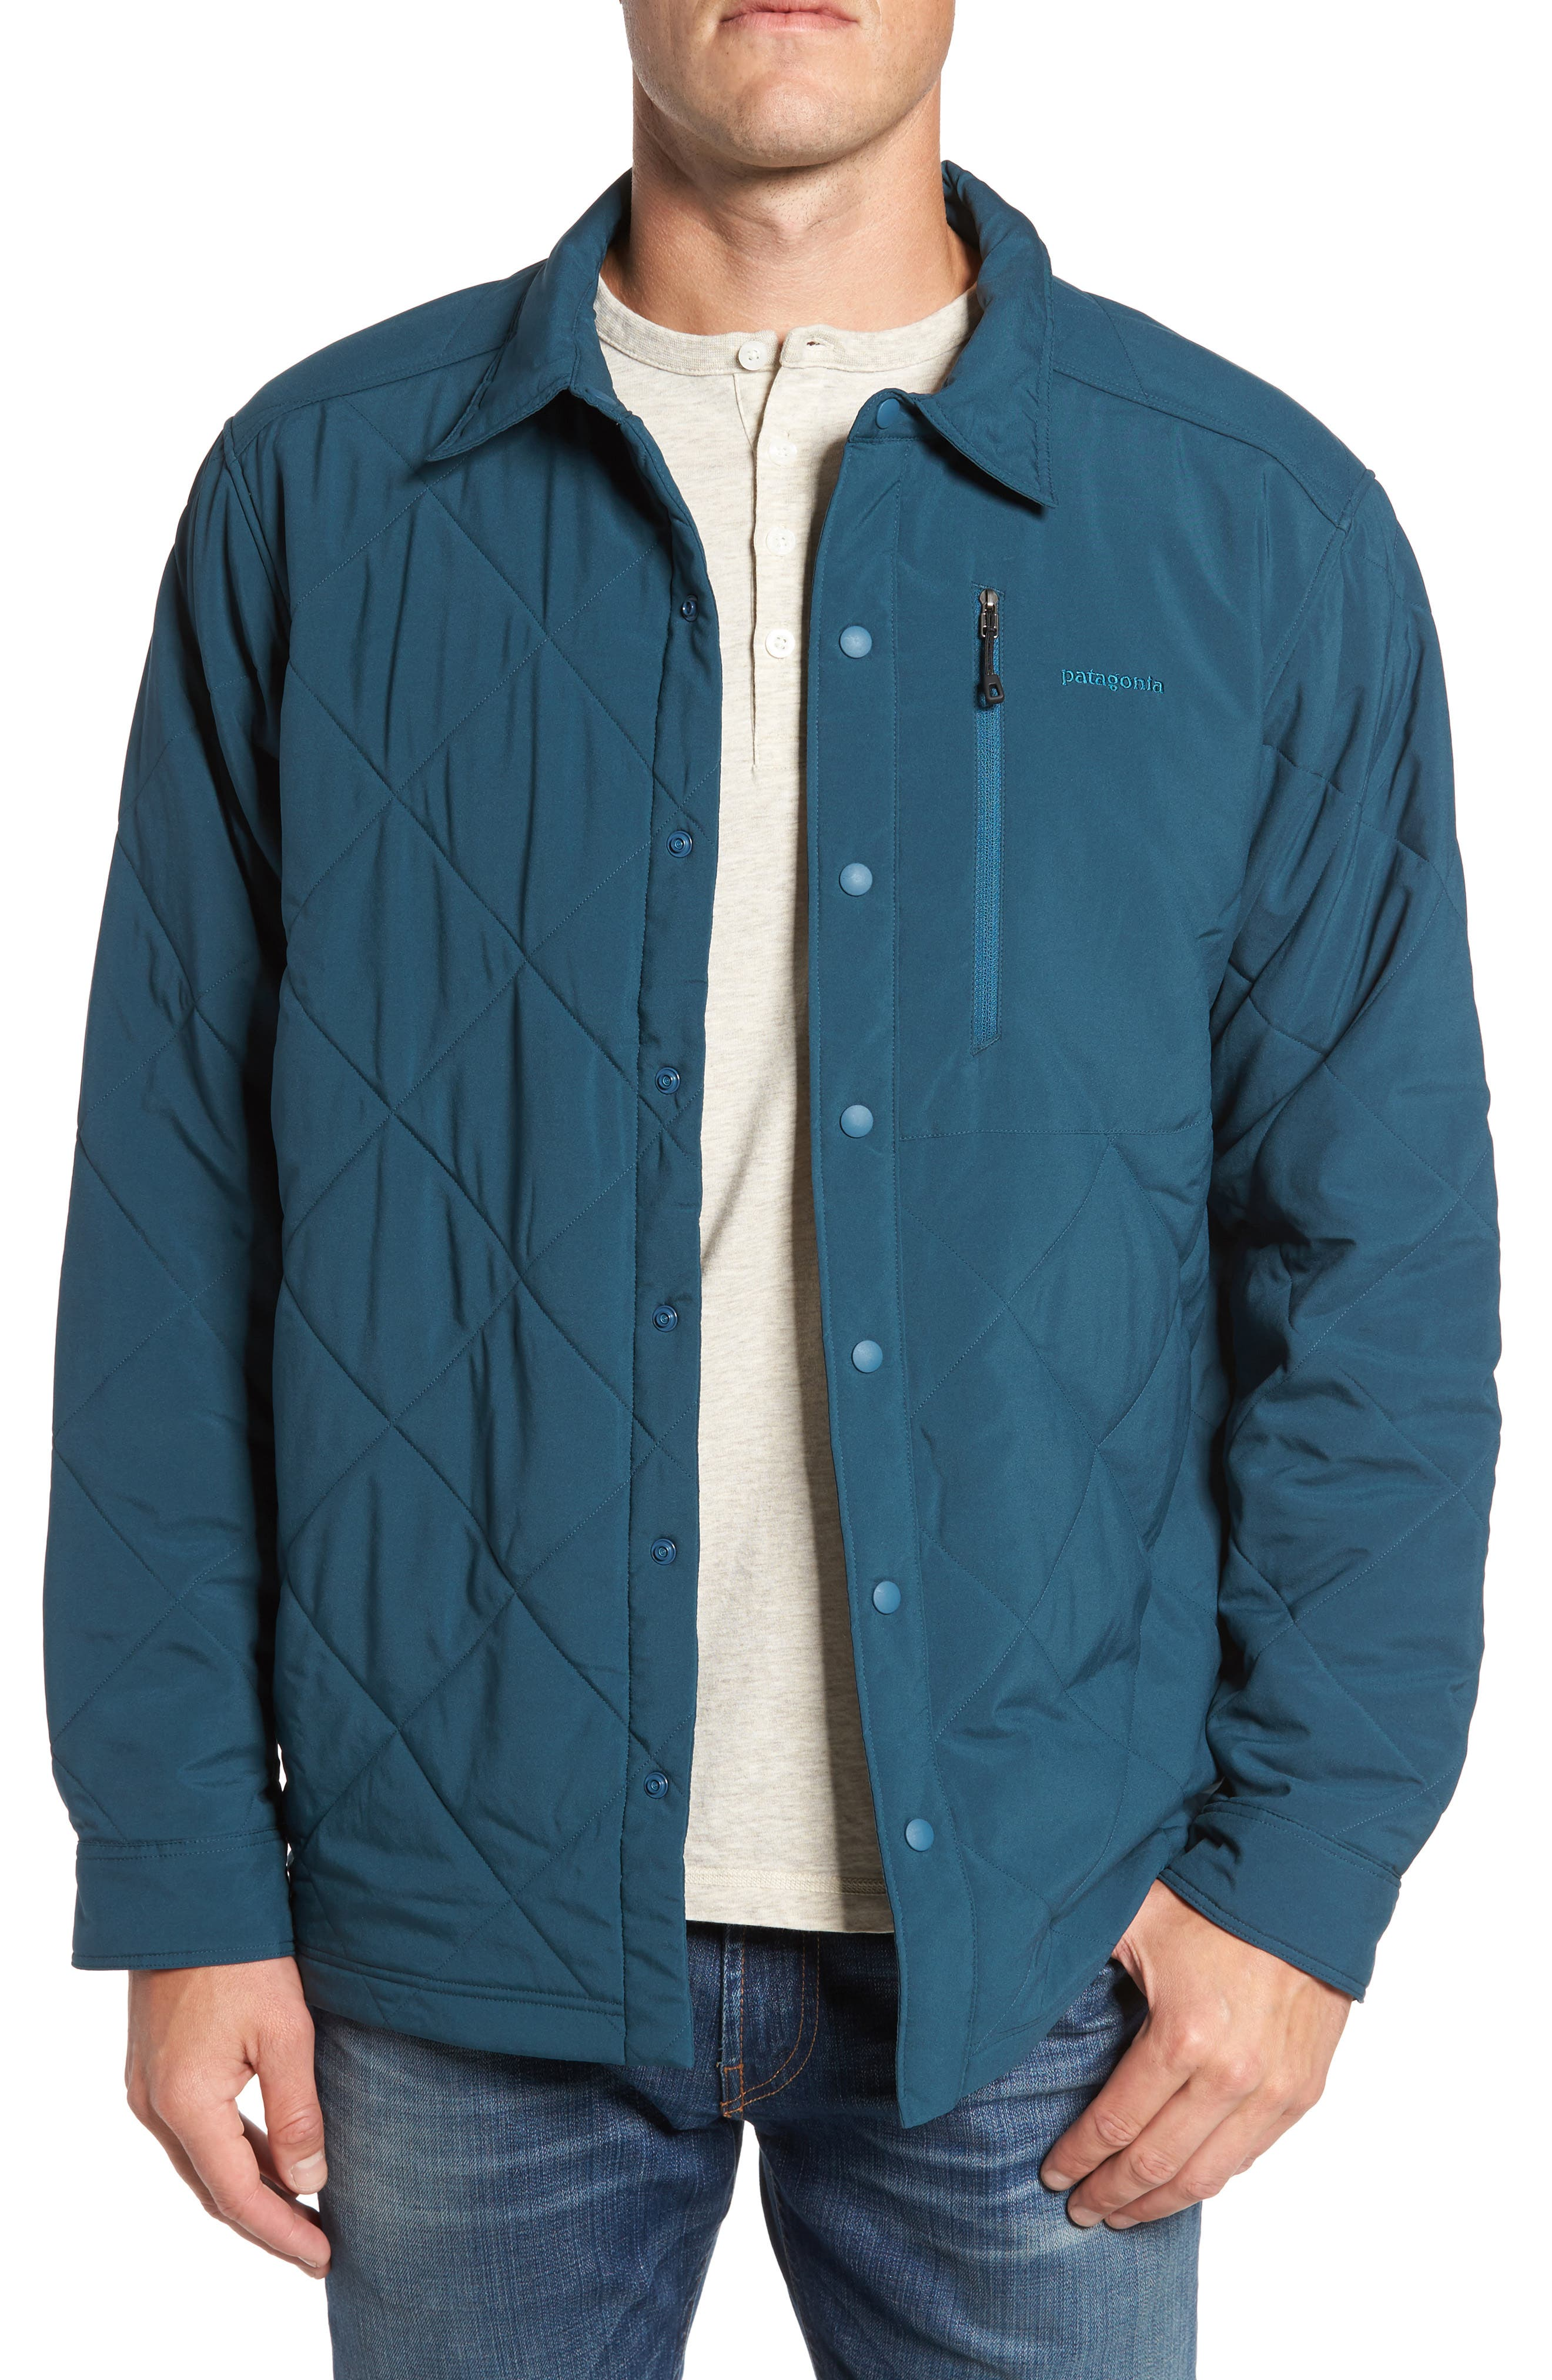 Main Image - Patagonia Tough Puff Shirt Jacket